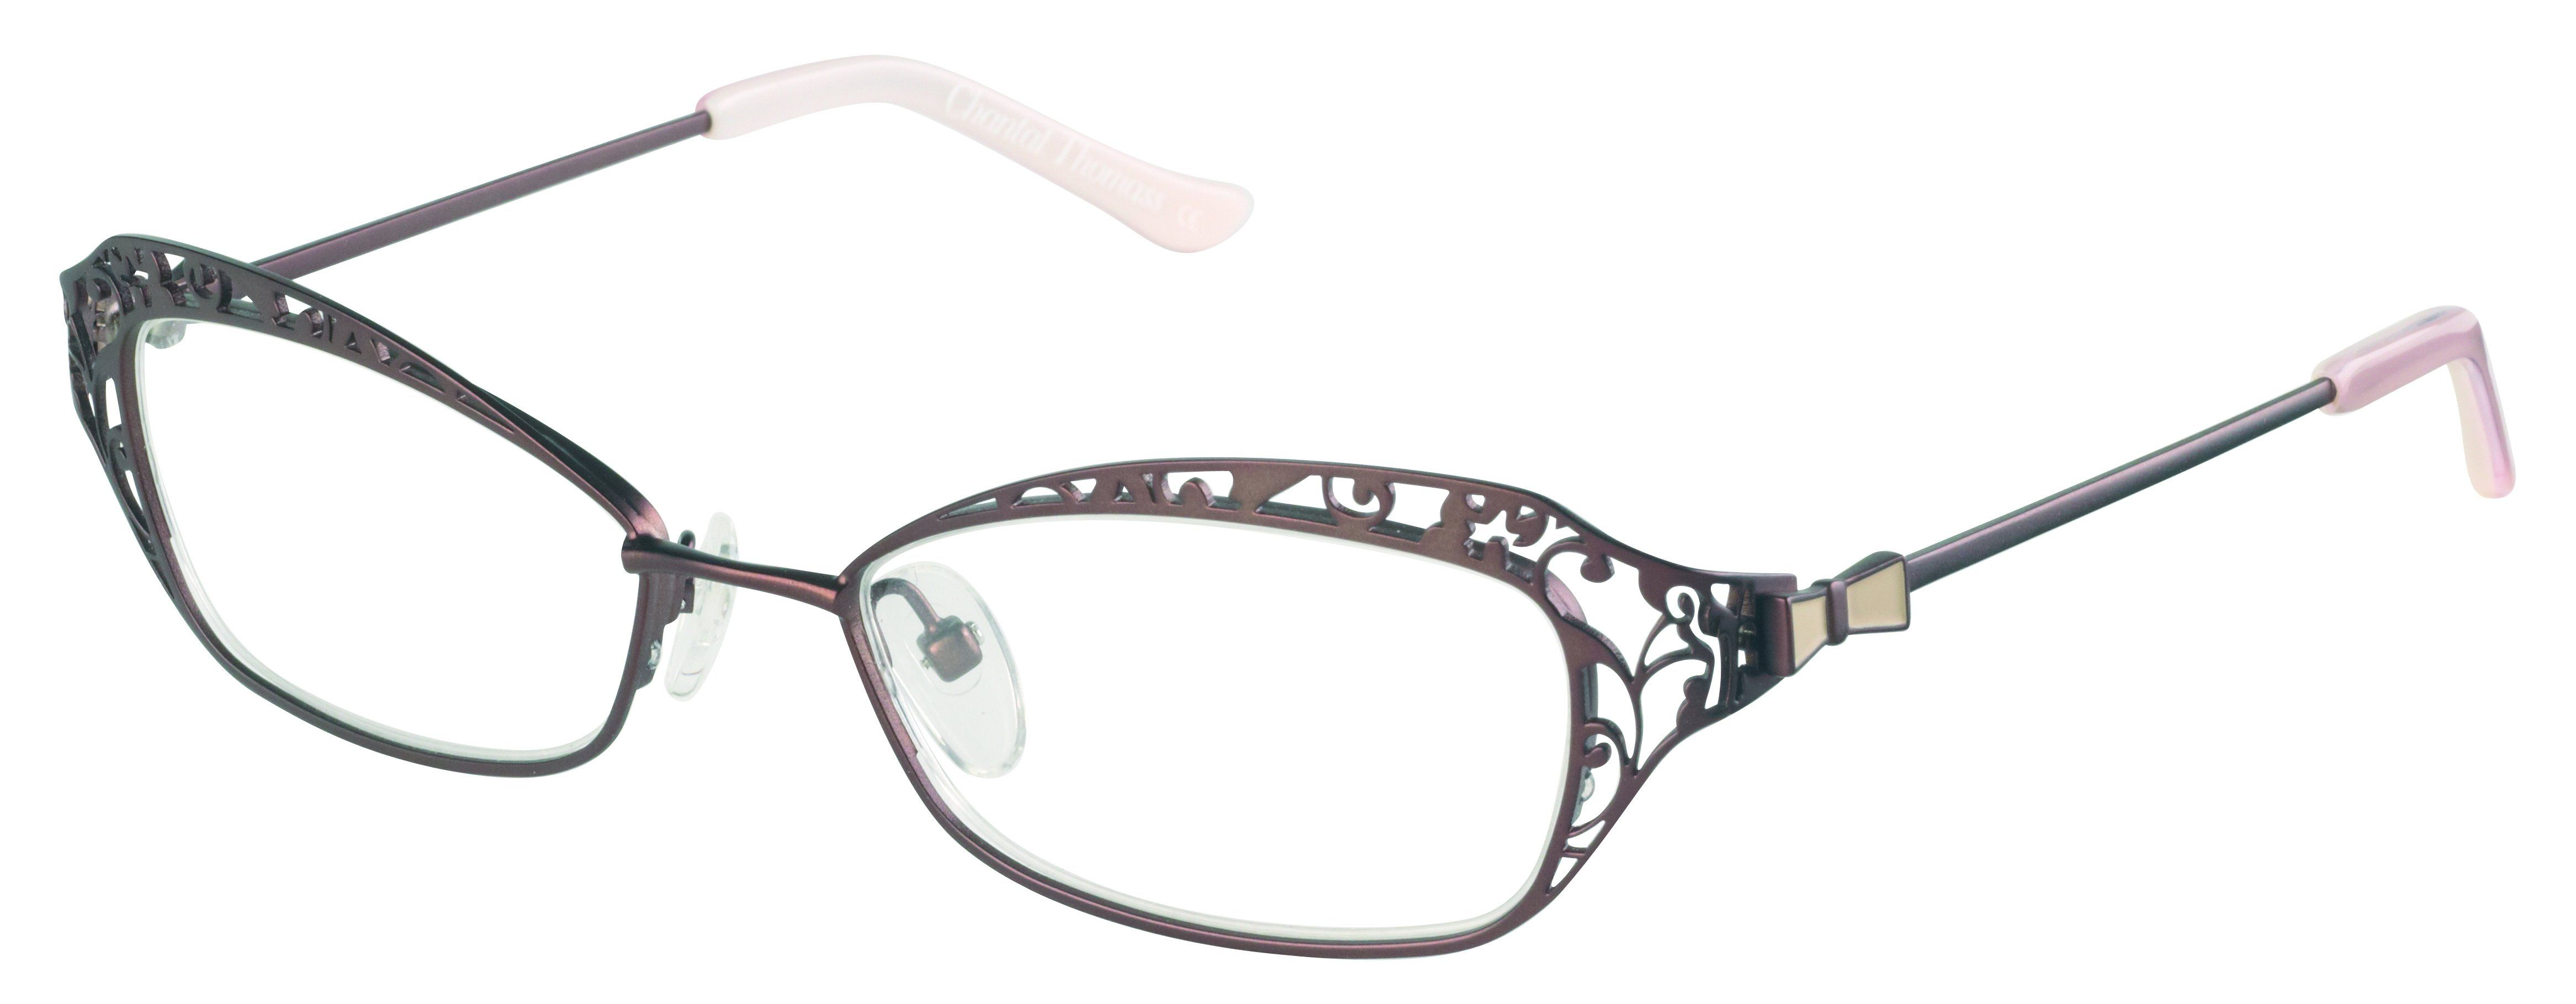 0f082135f9 The Chantal Thomass eyeglasses CT14024 by Eastern States Eyewear is a metal  designer frame. Most designer frames come with an authentic case.